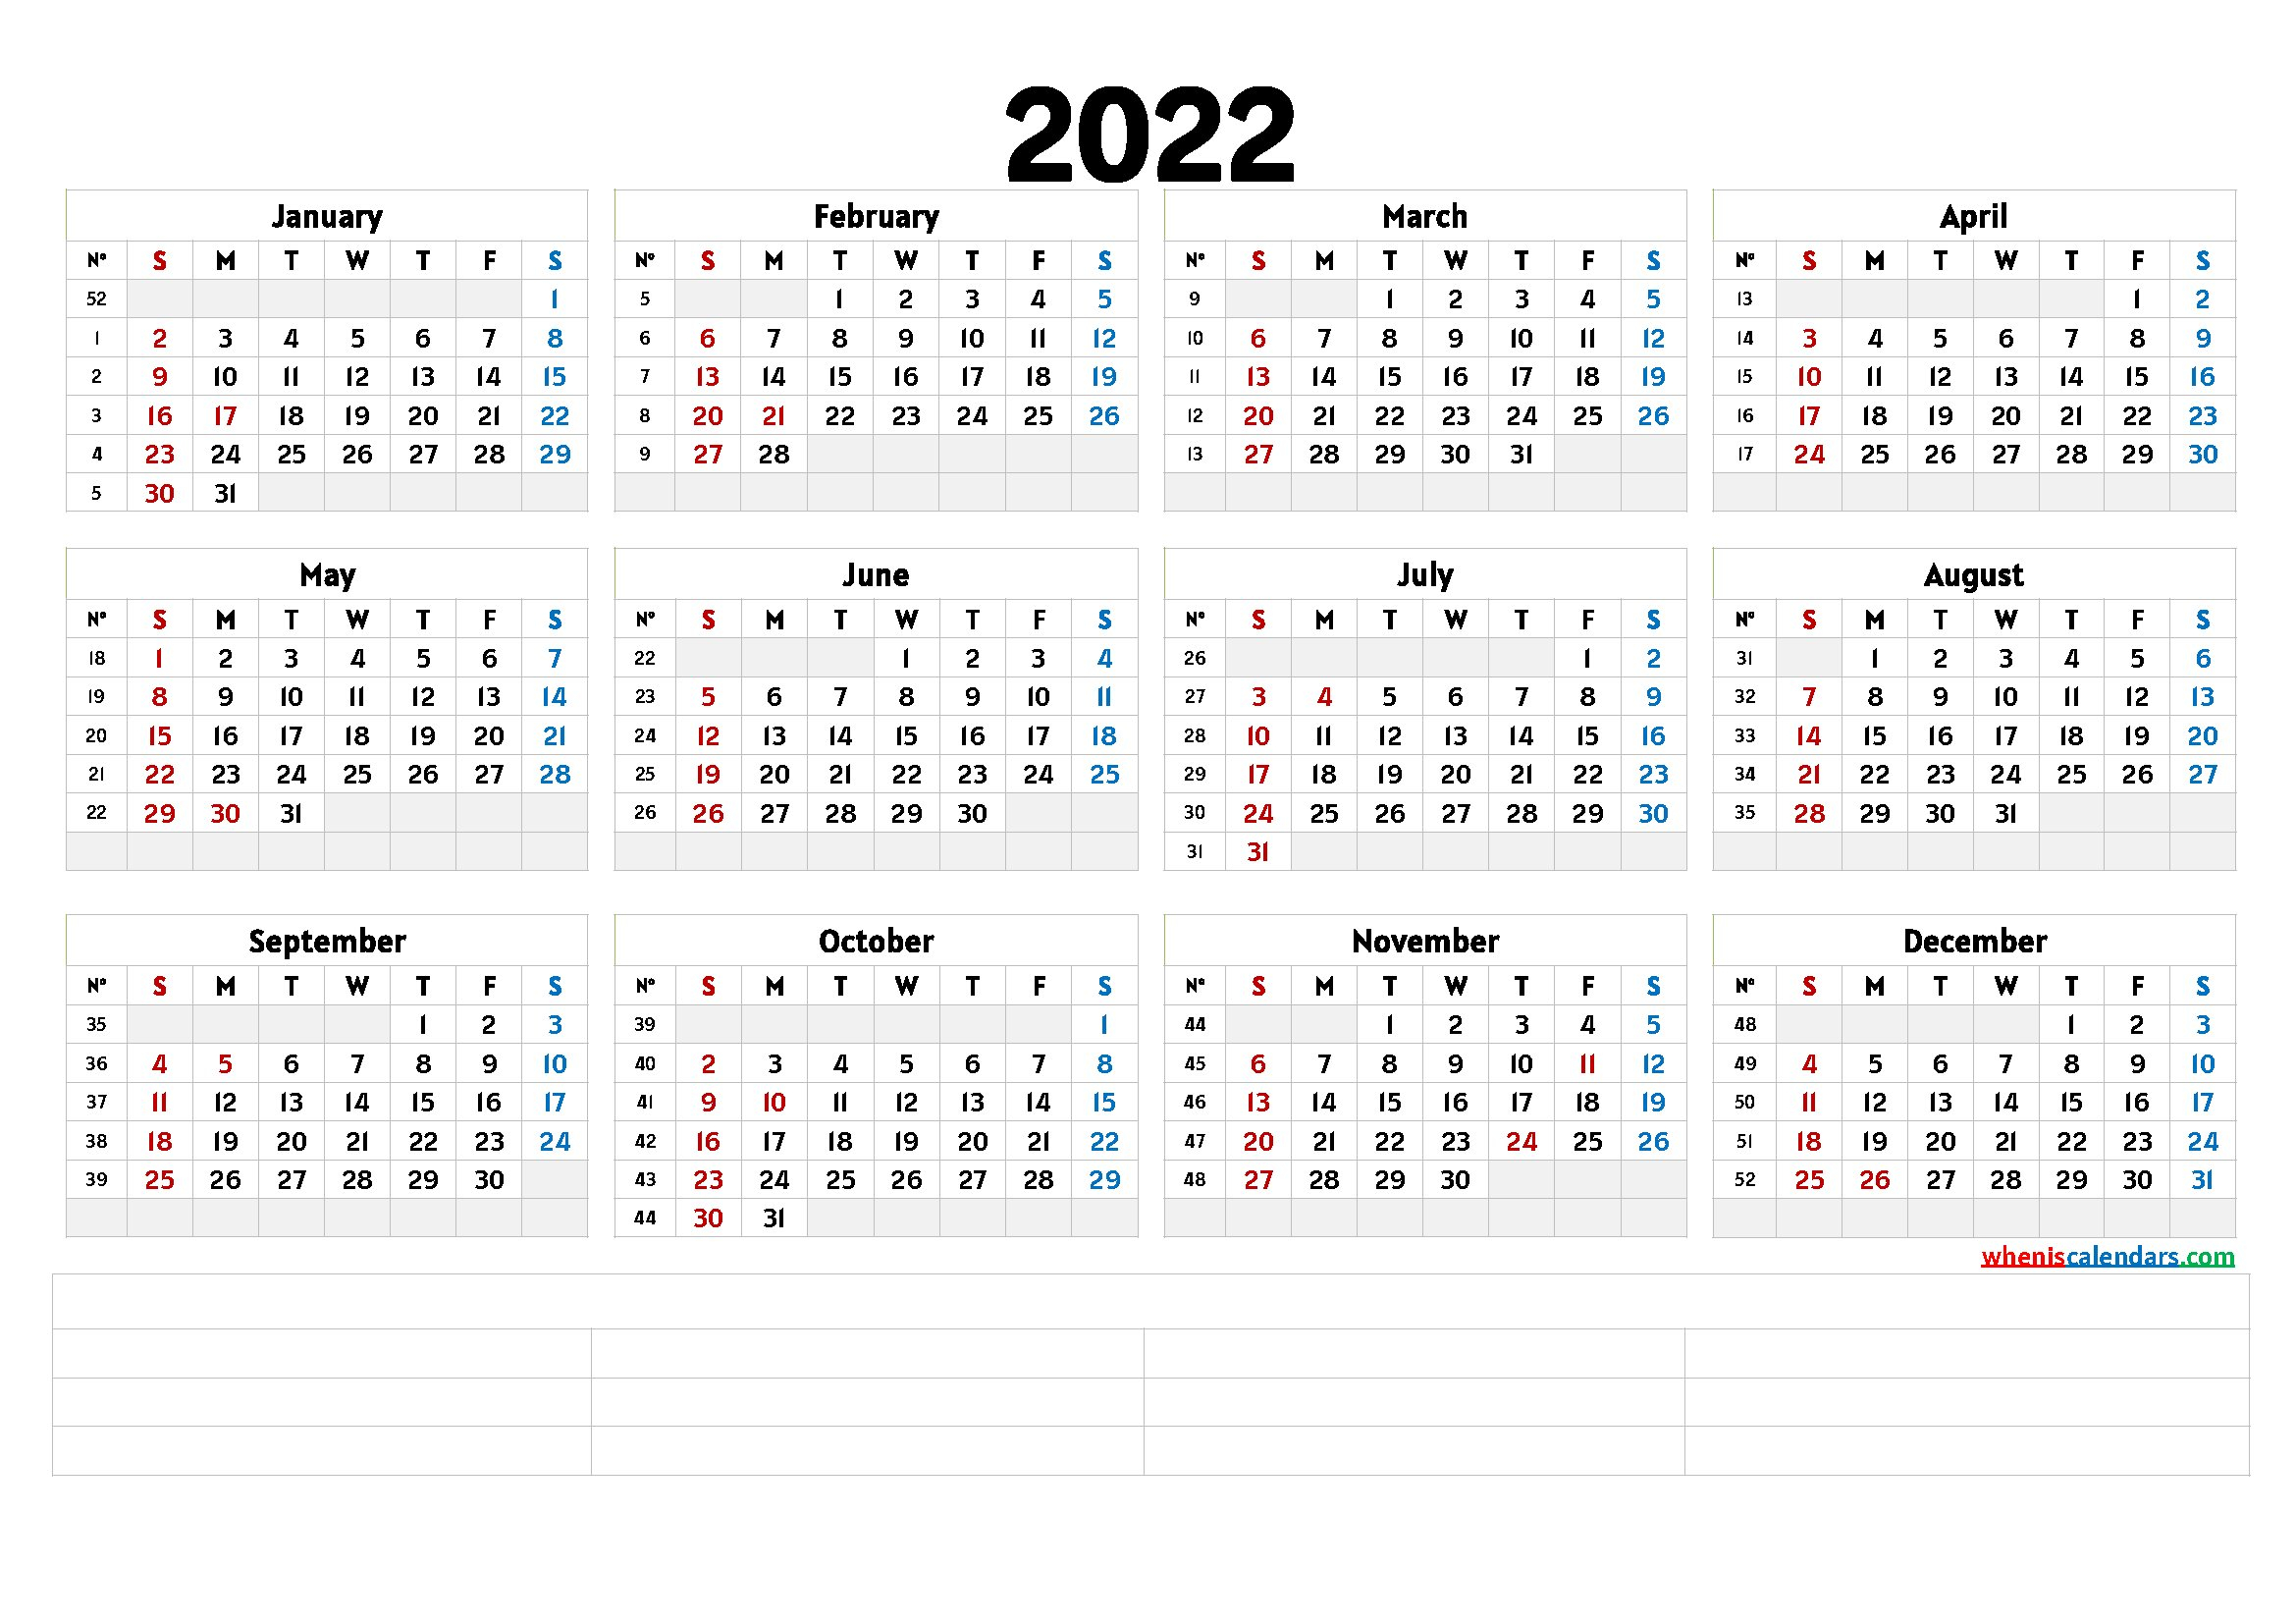 Free Printable 2022 Calendar Templates - Calendraex pertaining to Printable Day Planner 2022 Image